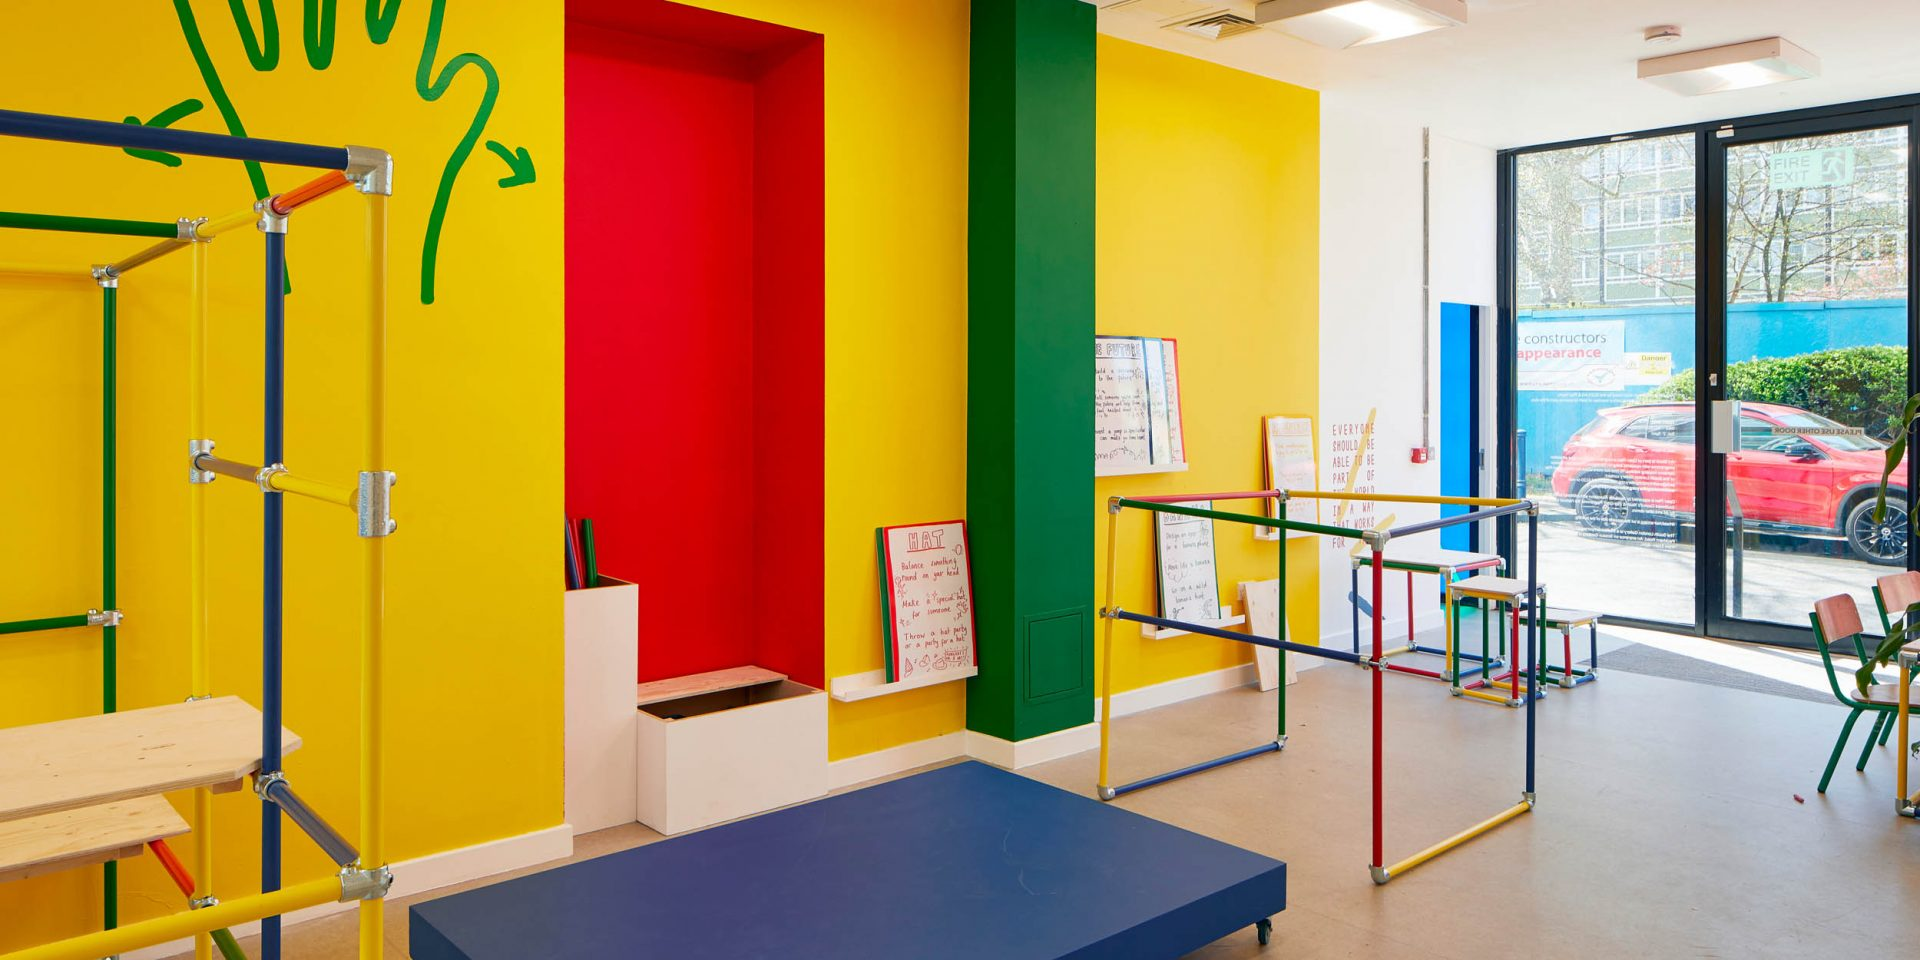 Art Block with a brightly coloured yellow wall, a brightly coloured wood modular structure and a green hand painted onto the wall